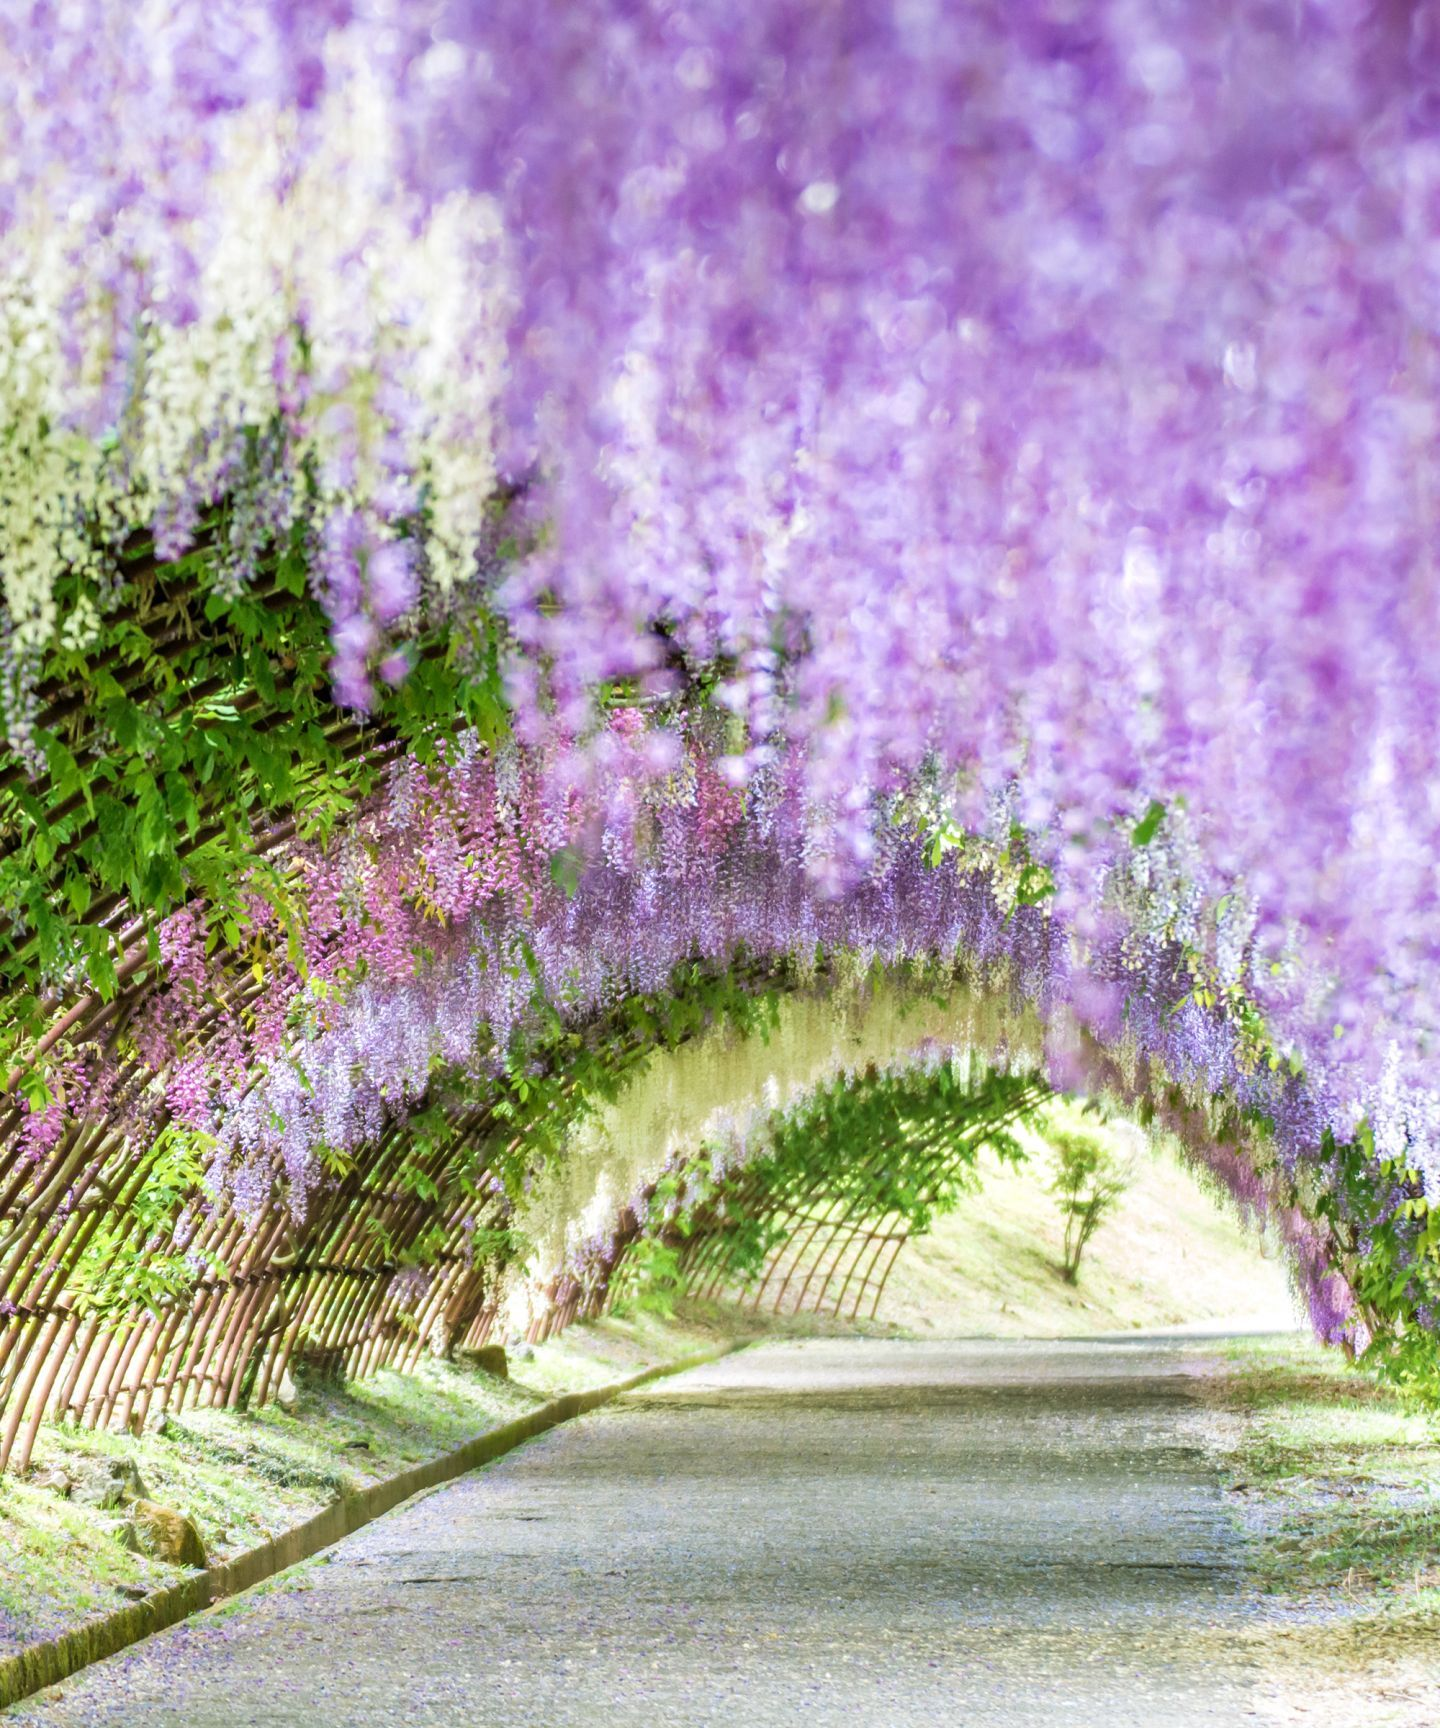 Forget Cherry Blossoms Japan S Wisteria Gardens Are A Technicolor Must See Wisteria Garden Japan Flower Garden Blossom Garden